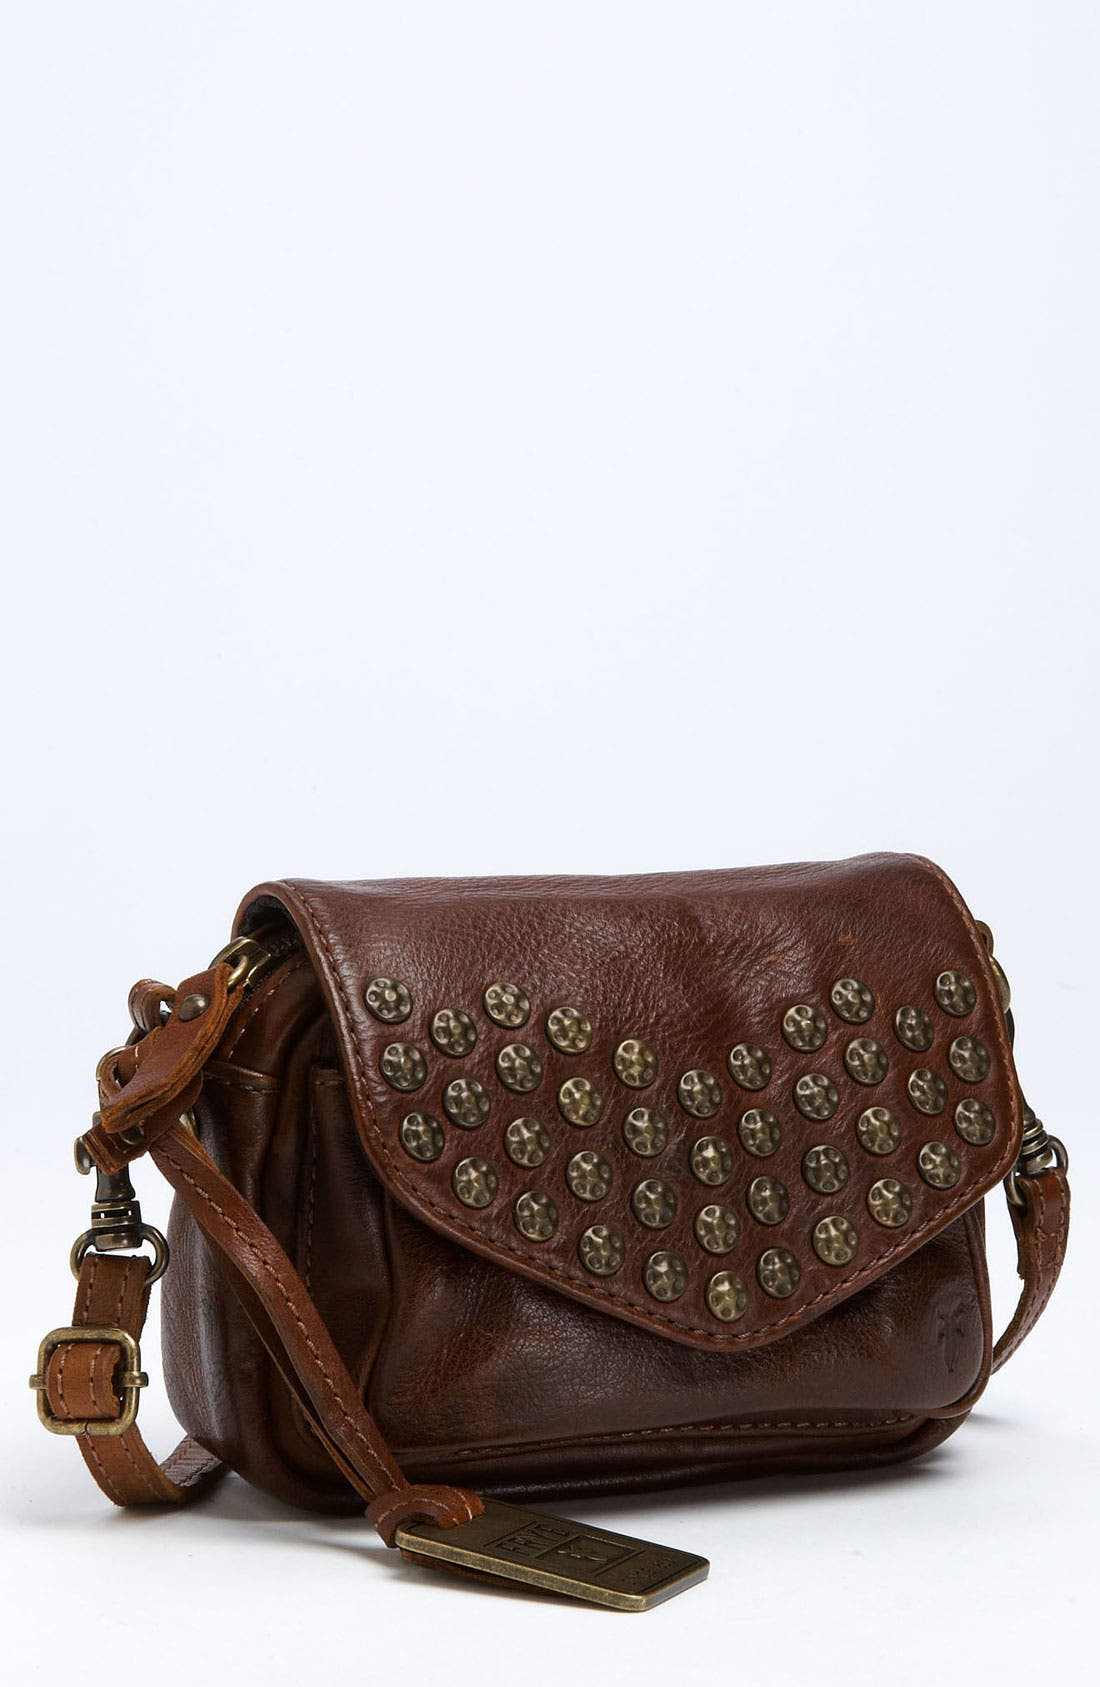 Main Image - Frye 'Brooke - Mini' Crossbody Bag